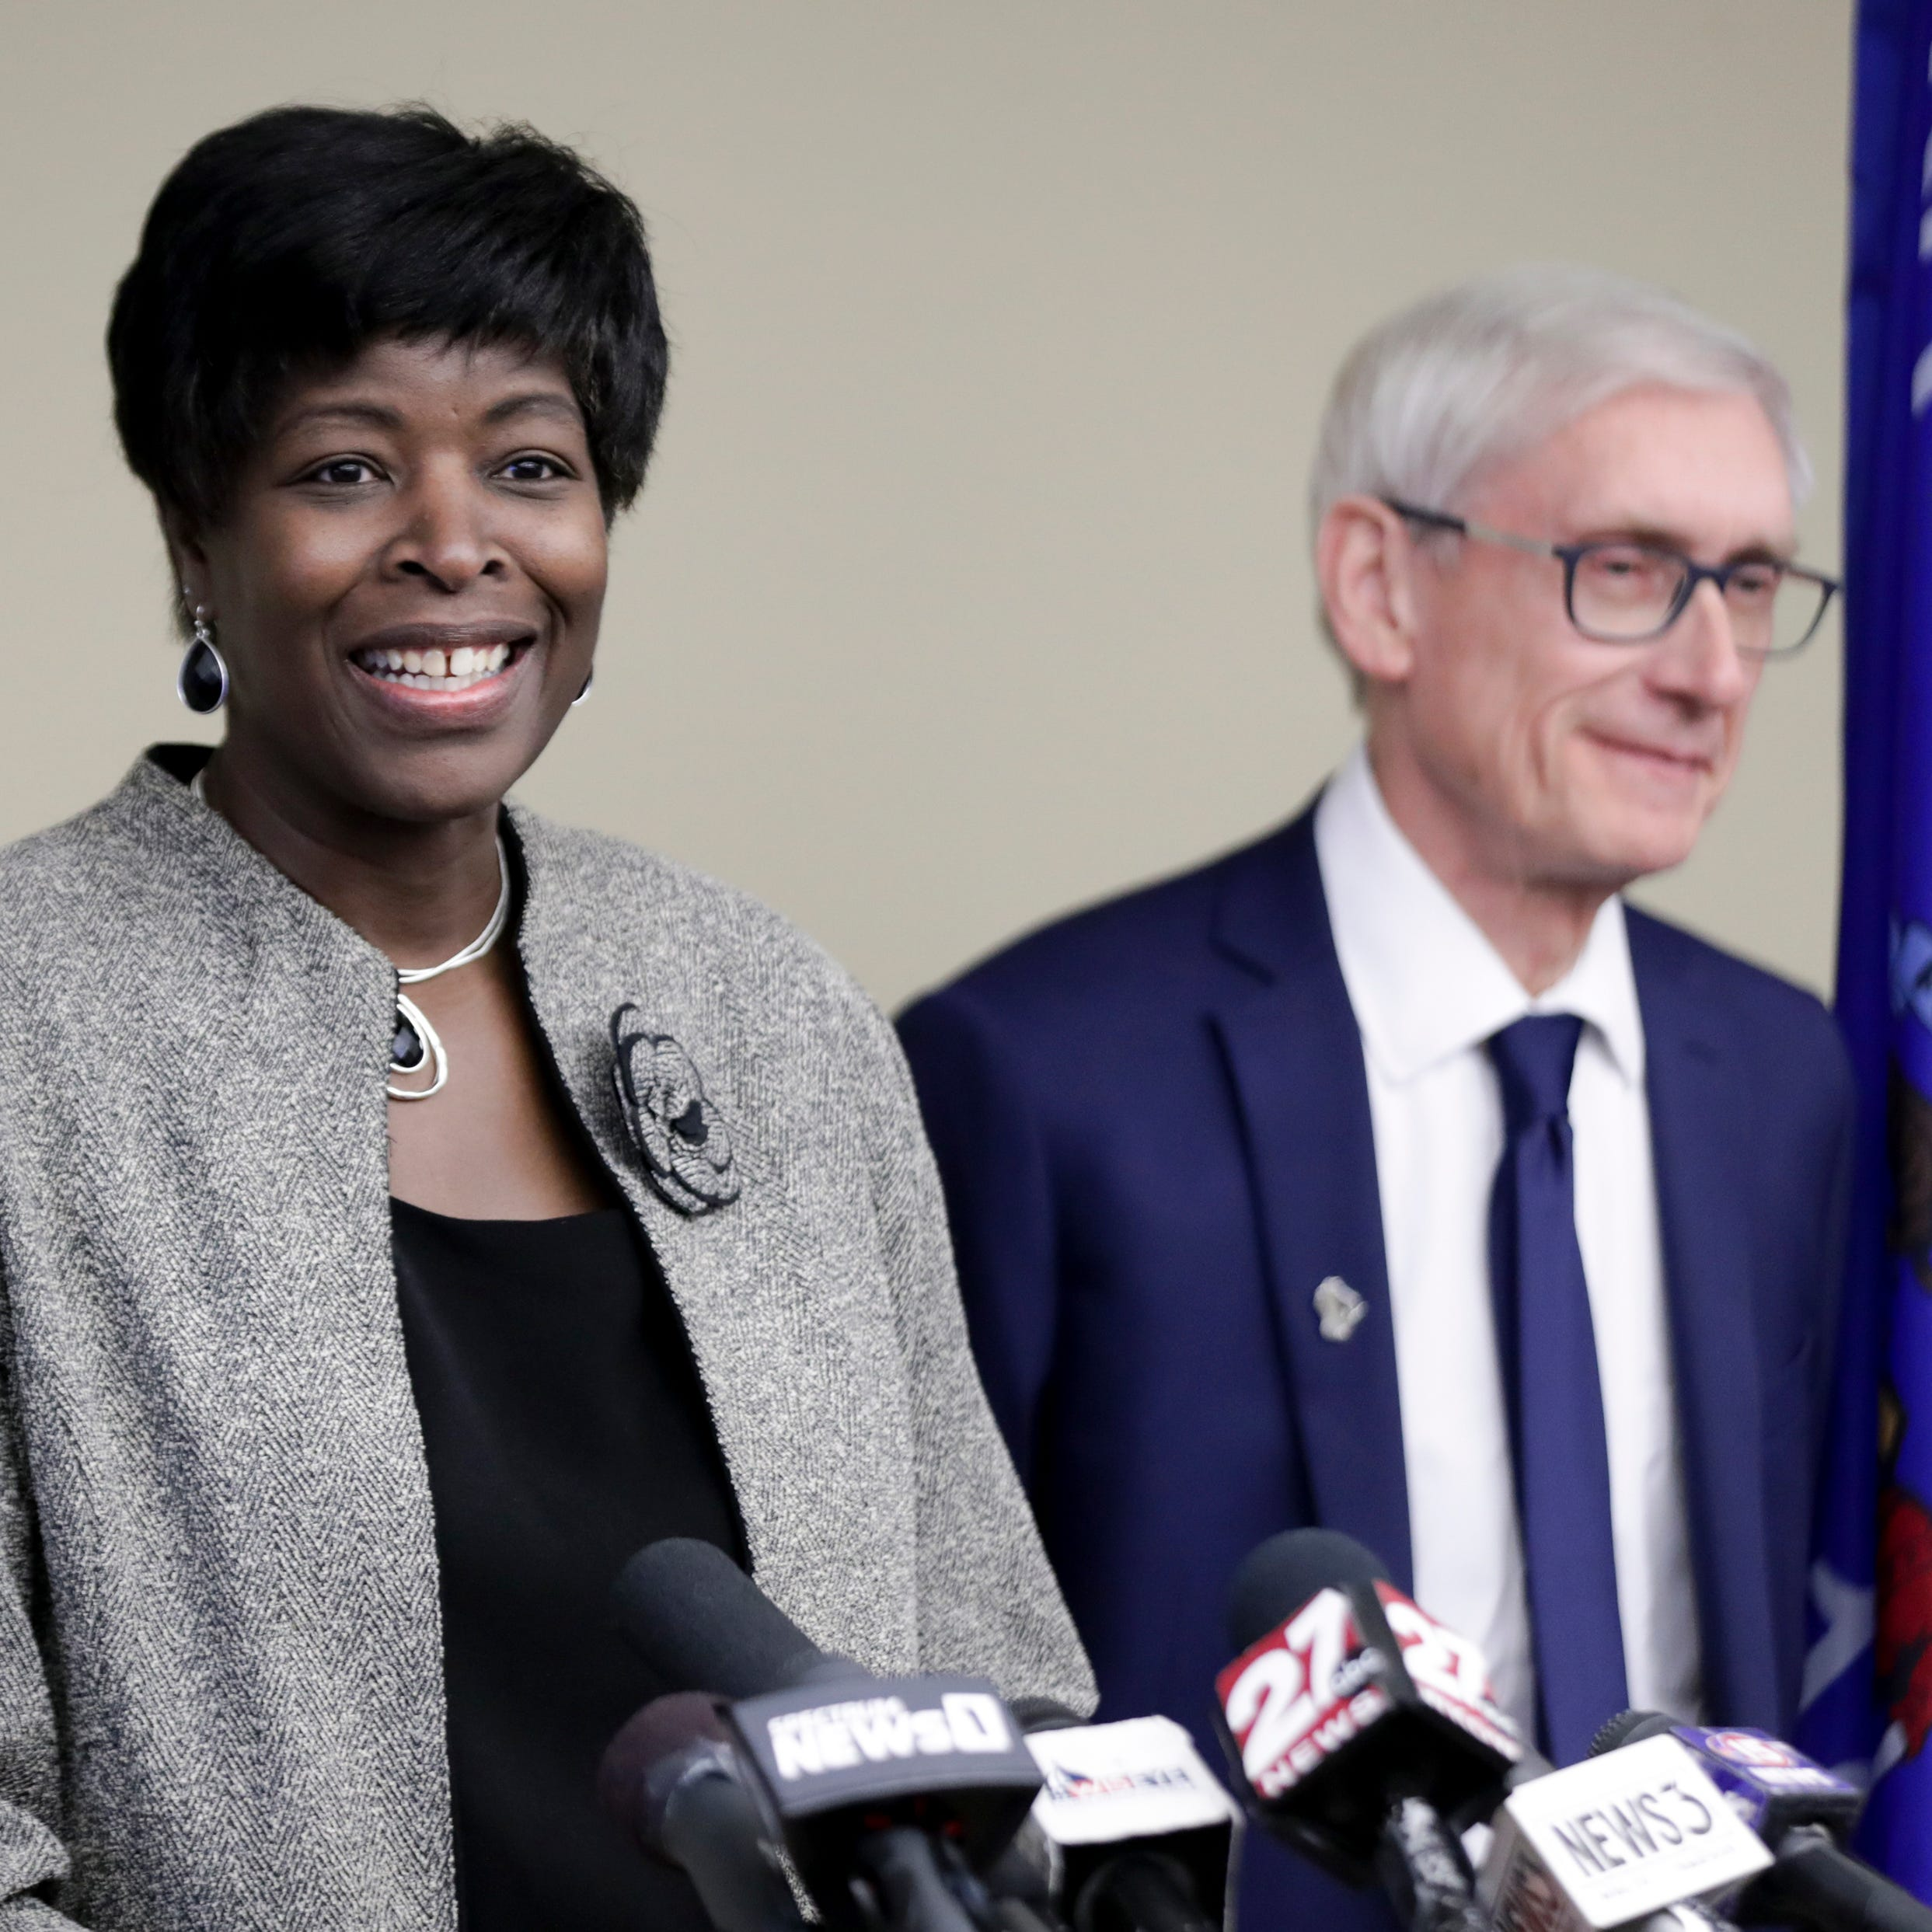 Tony Evers' cabinet pick charged in 2005 for allegedly abusing 5-year-old son